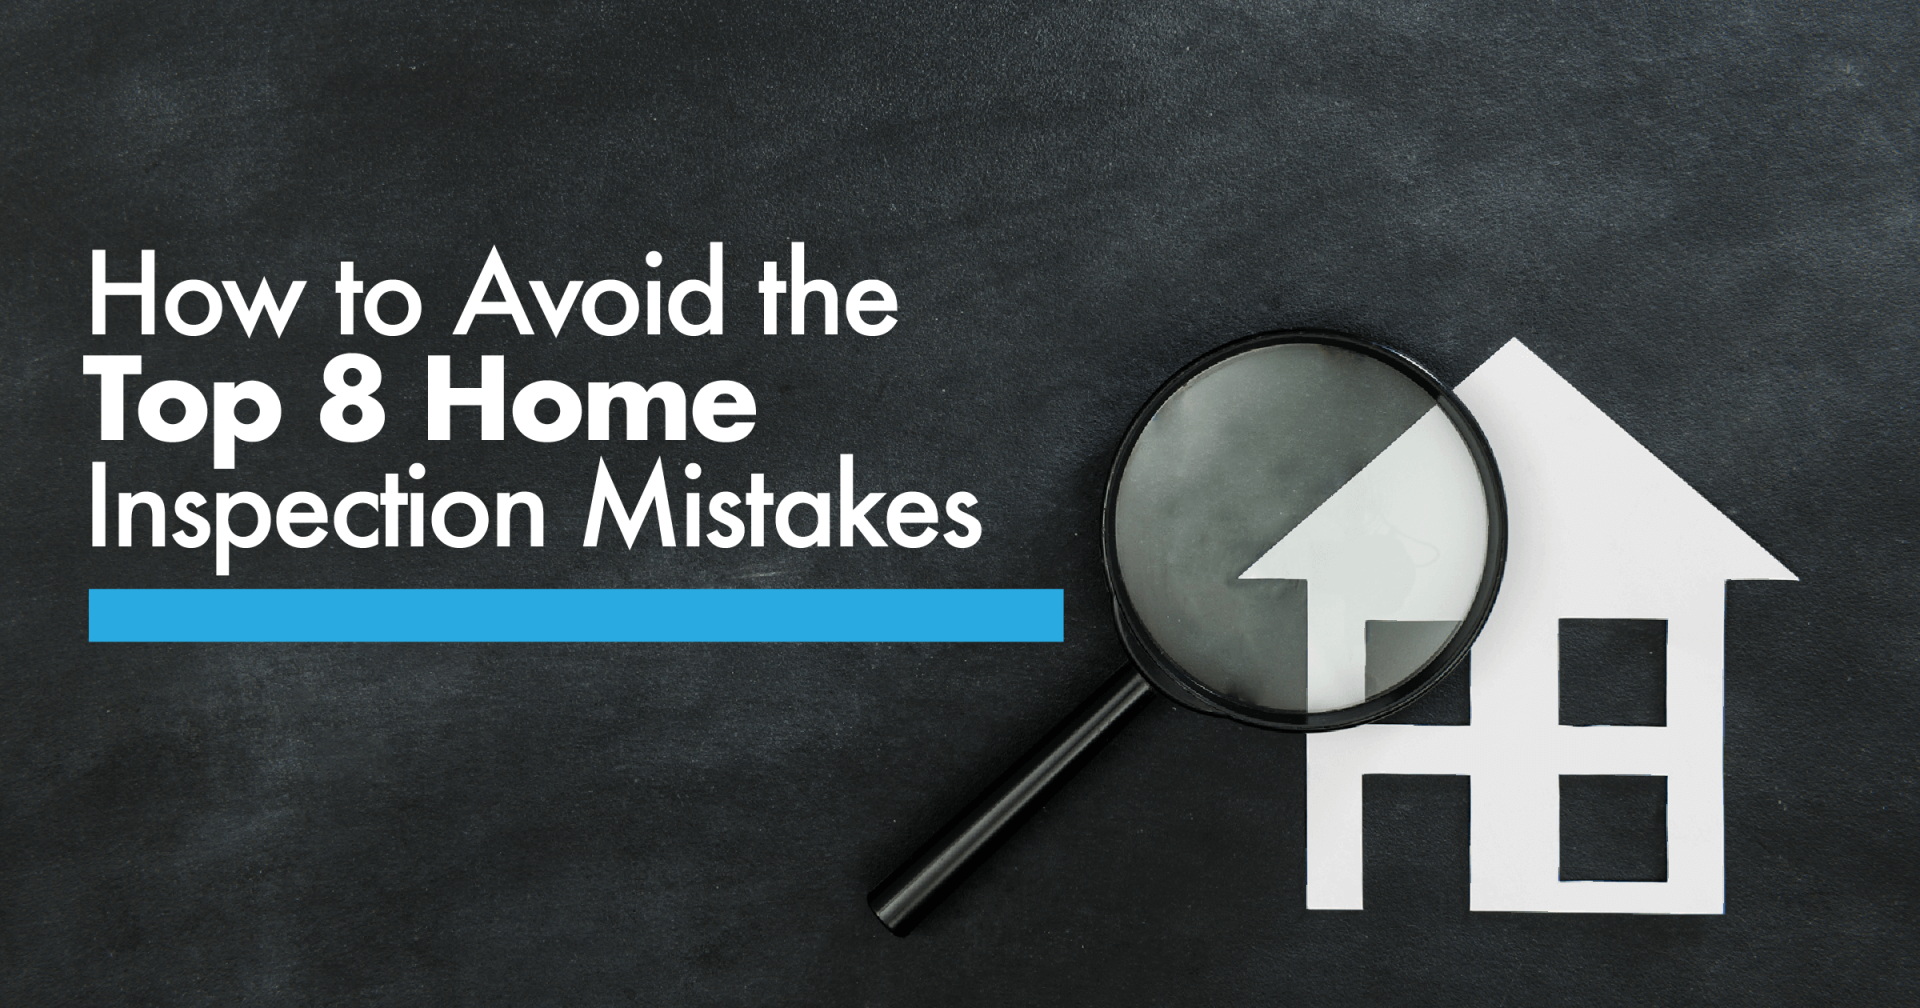 Top 8 Inspection Mistakes